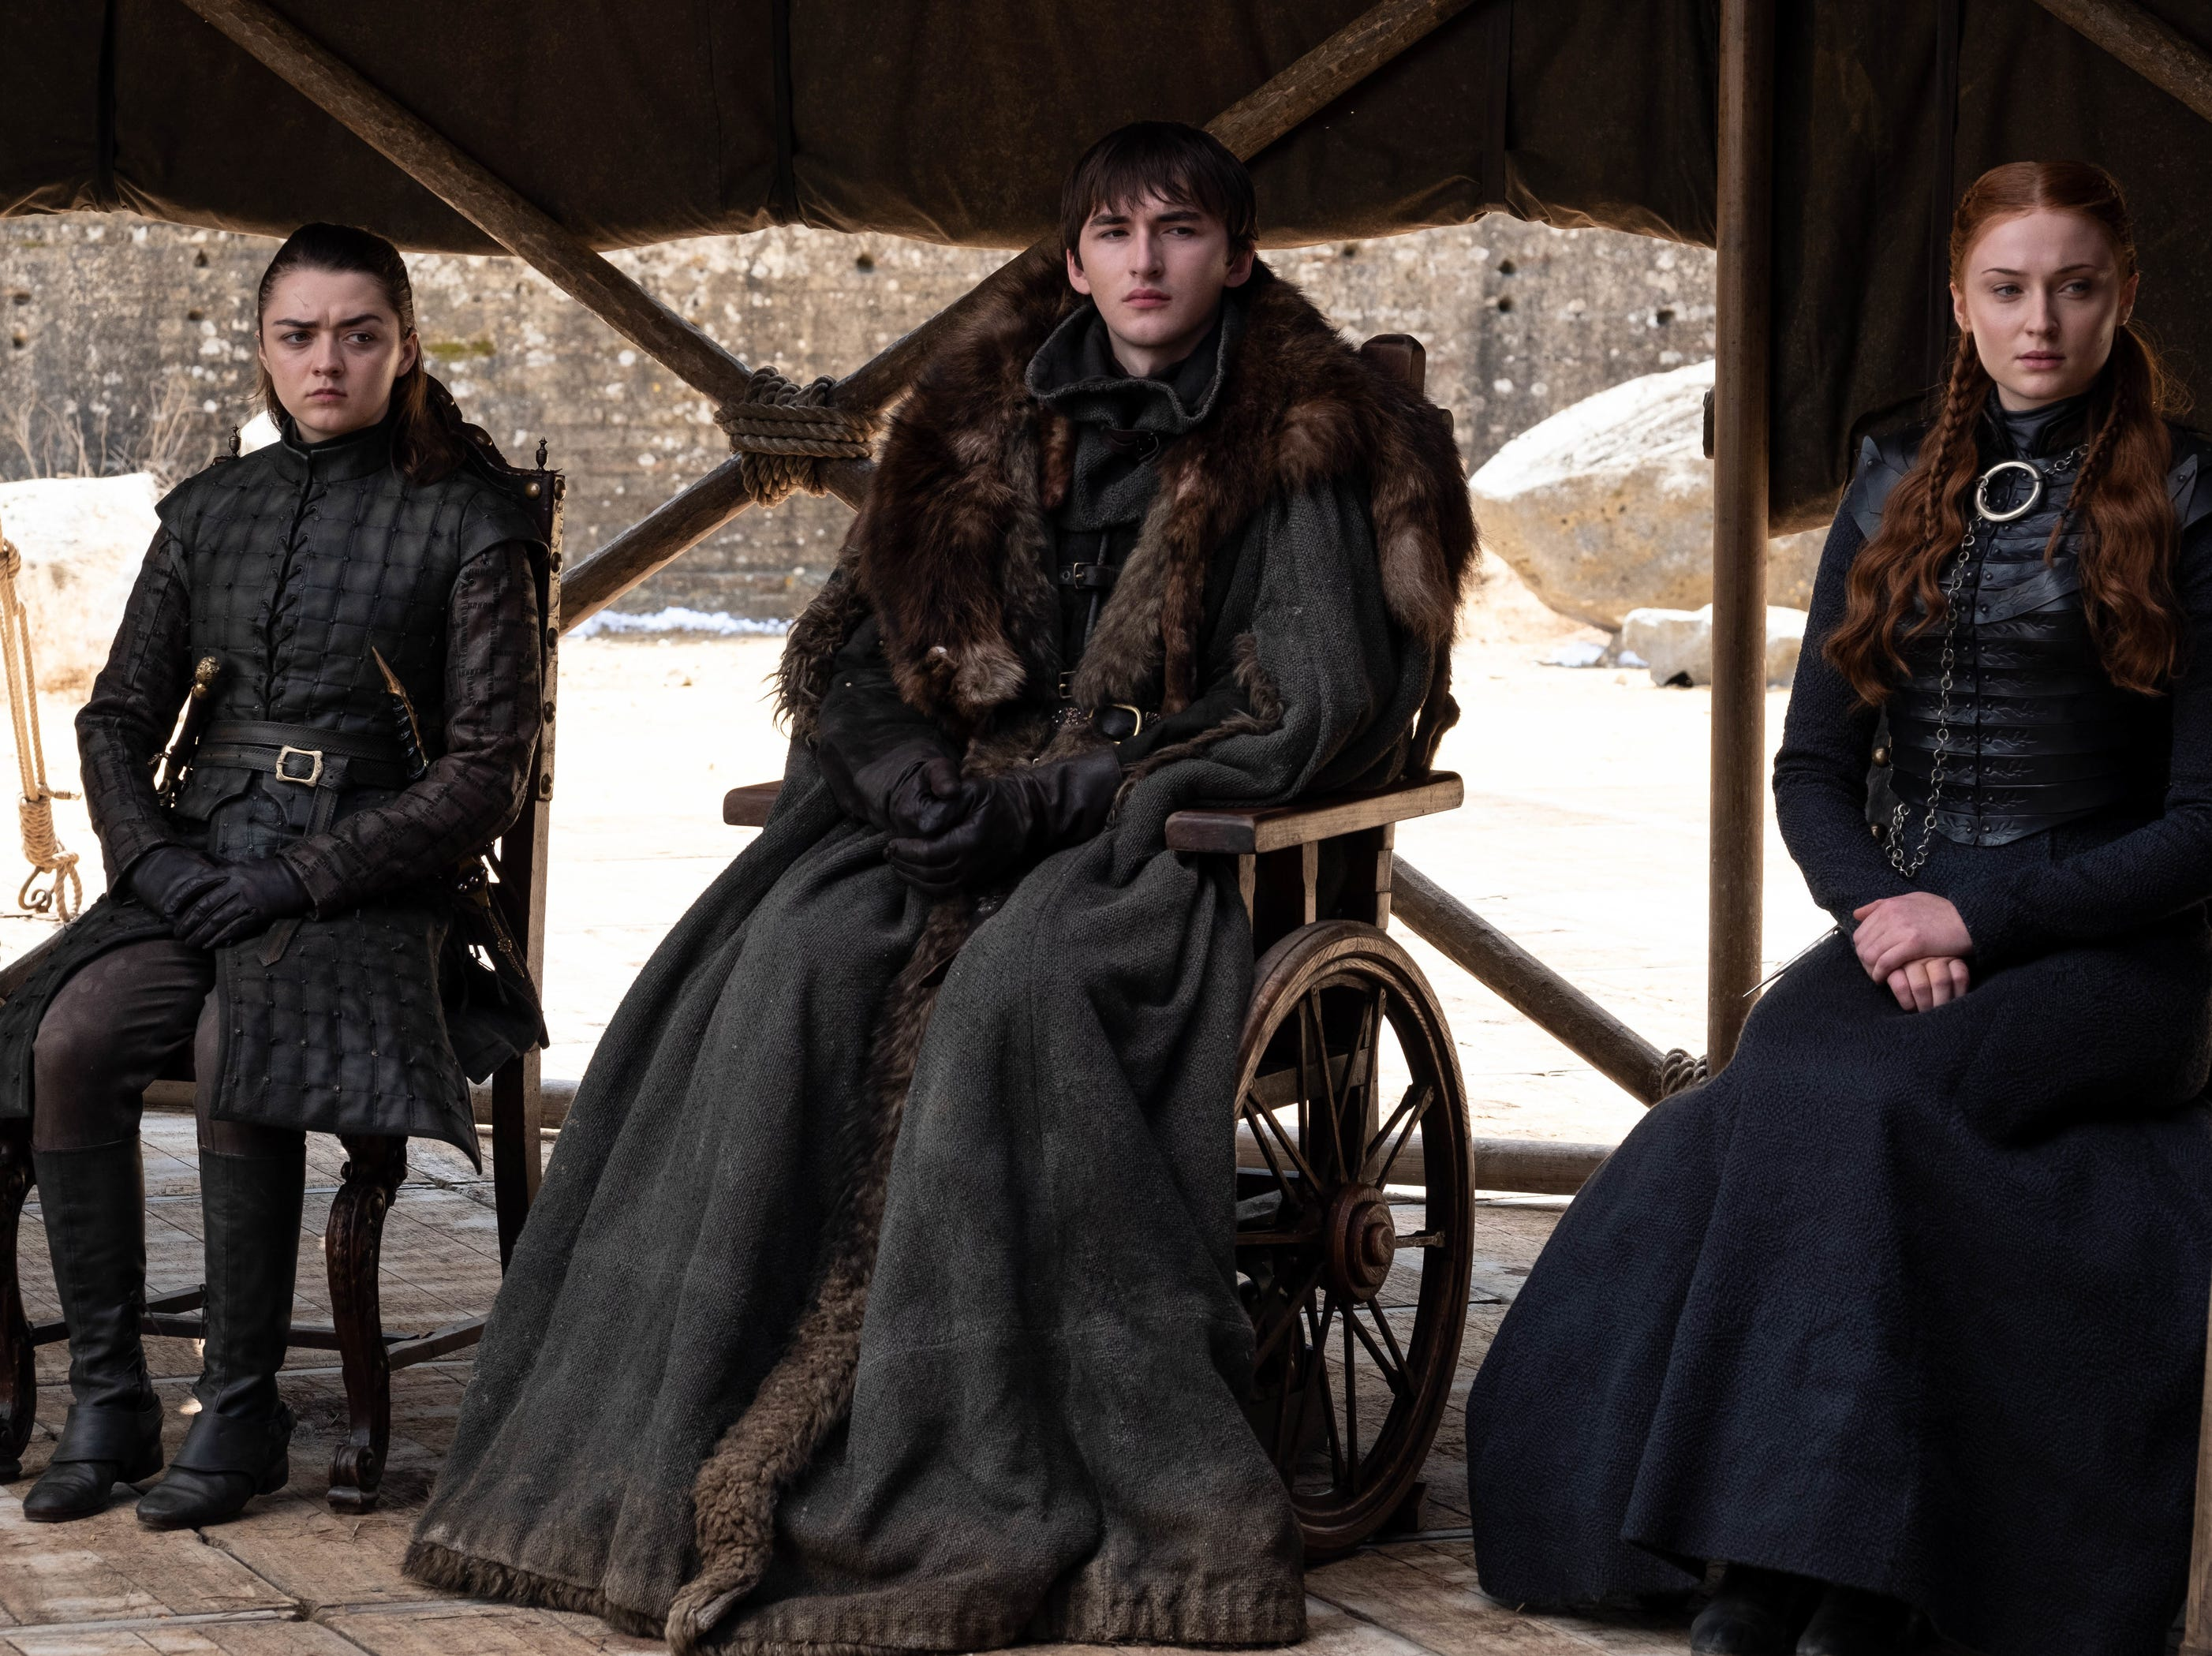 The Starks - Arya (Maisie Williams), left, Bran (Isaac Hempstead Wright) and Sansa (Sophie Turner) - all play significant roles in the hit show's resolution.